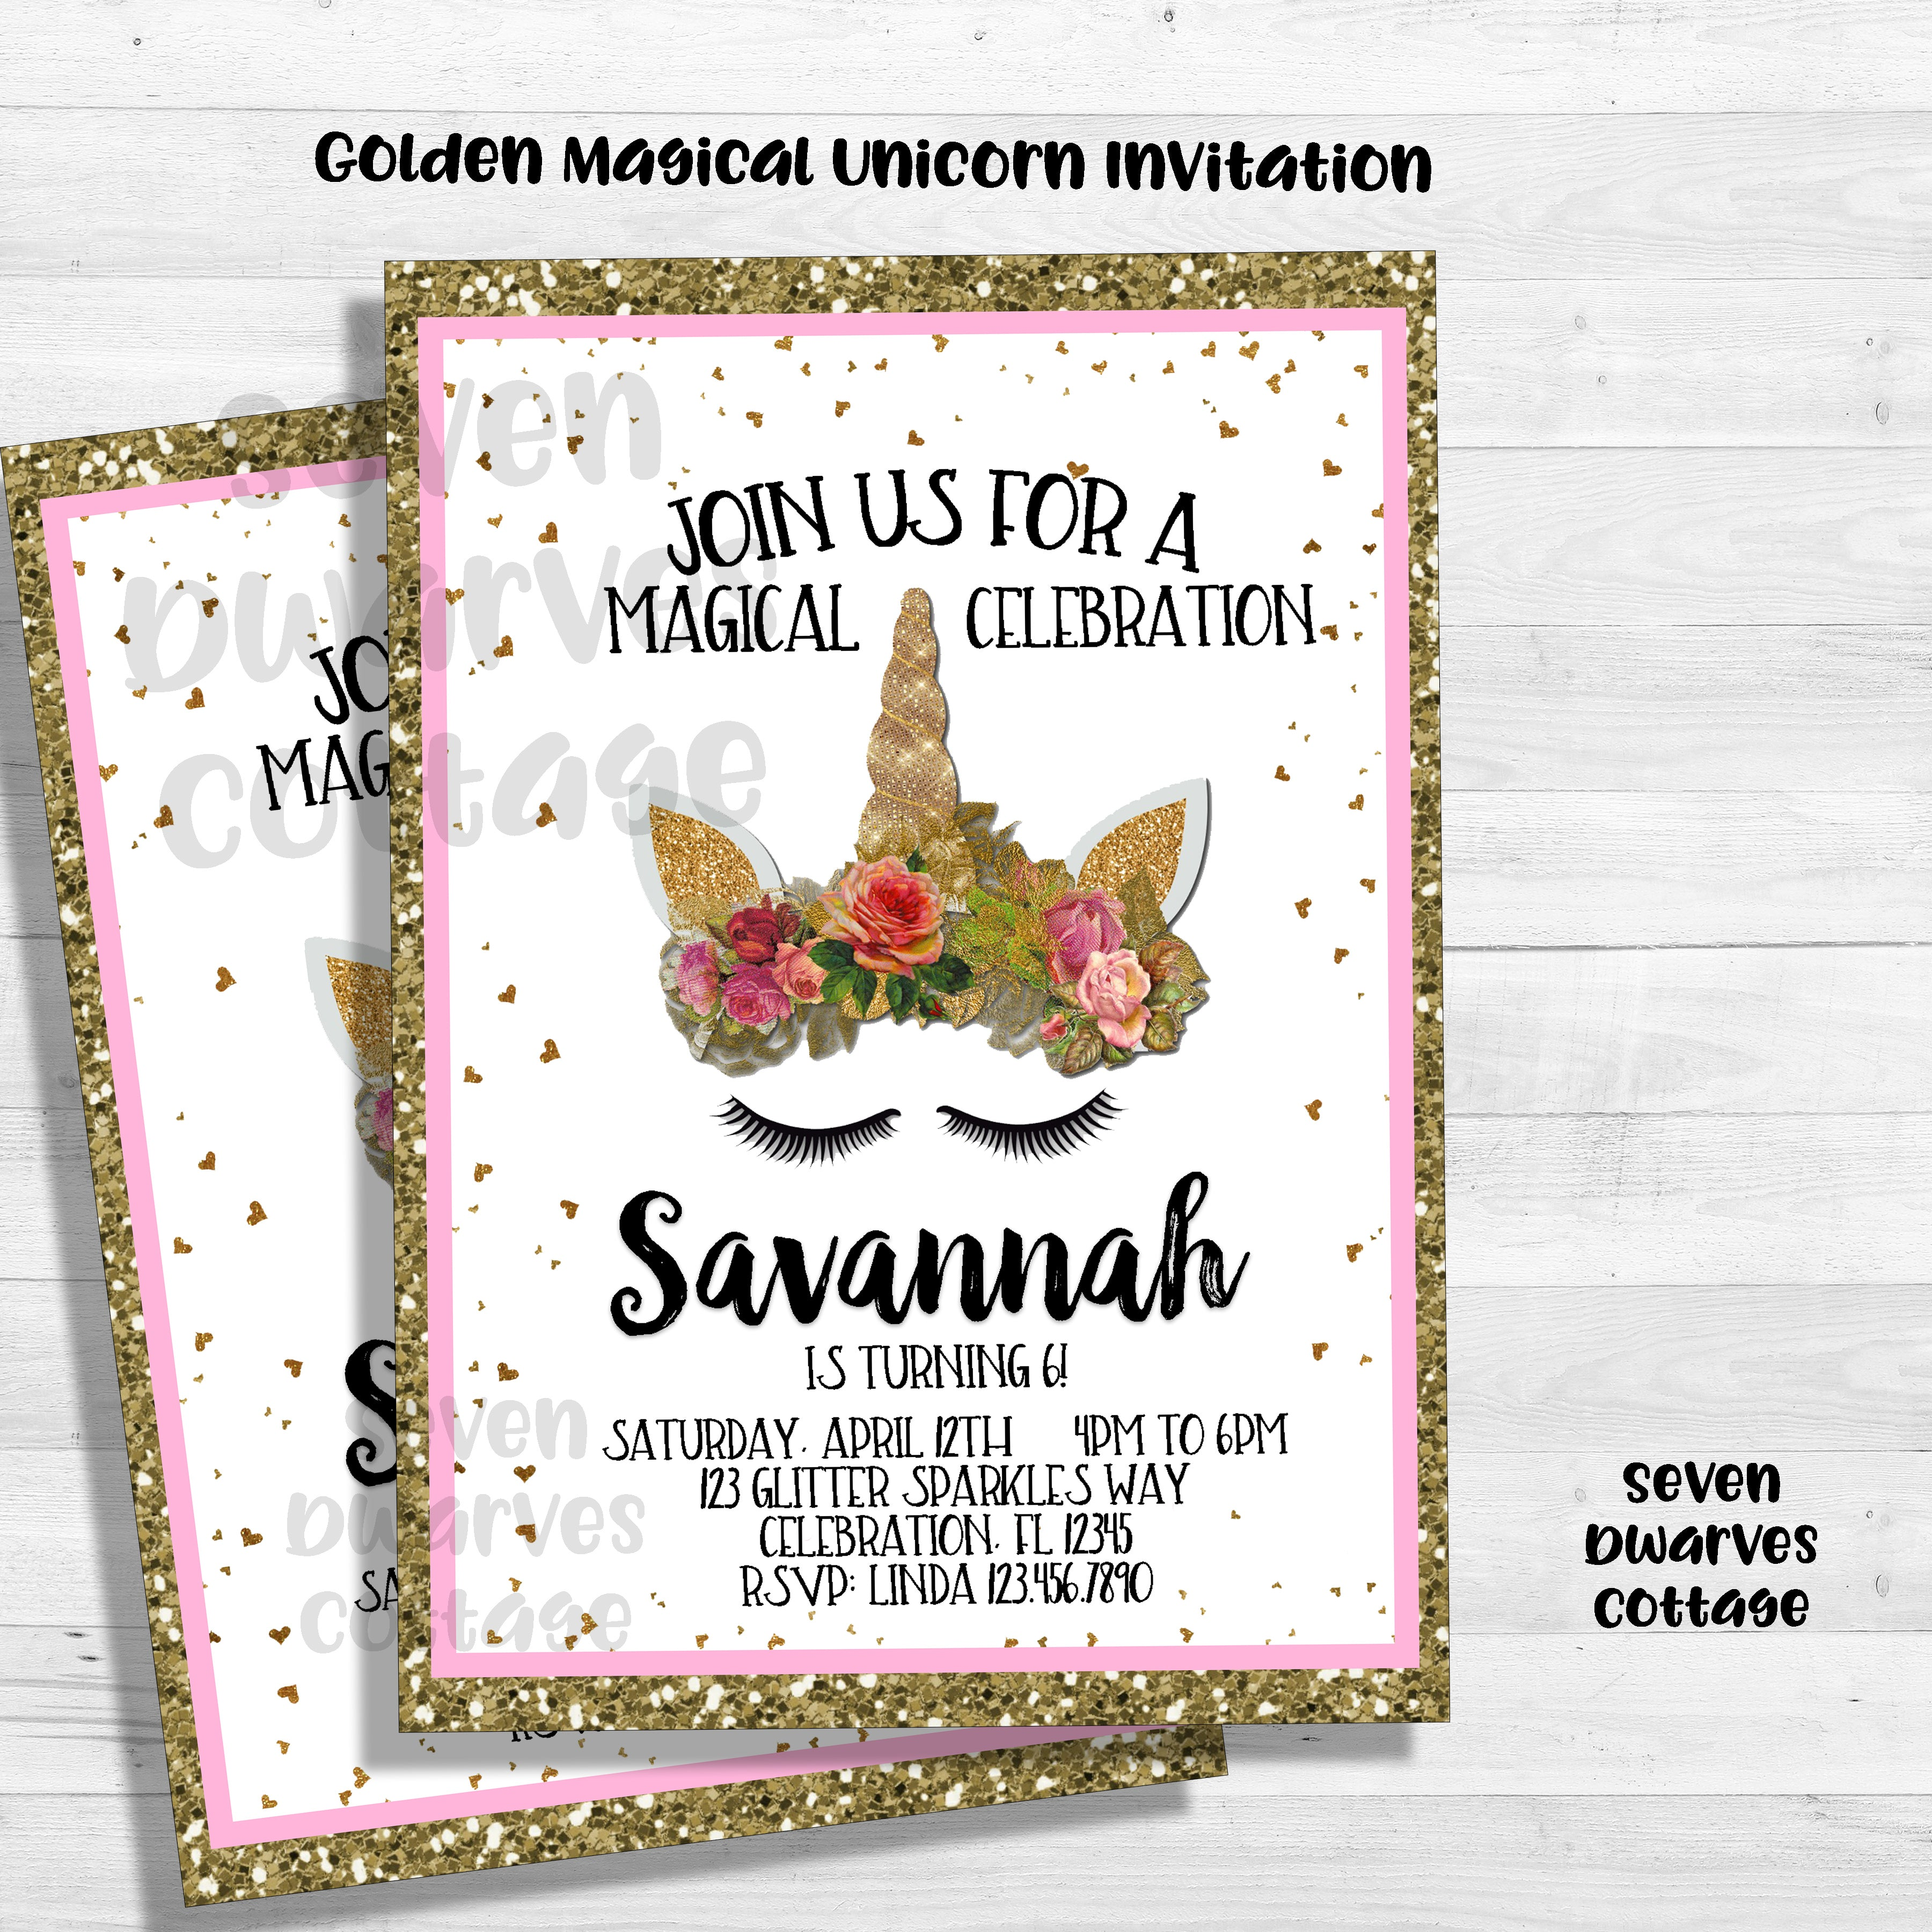 Magical Golden Unicorn Celebration Invitation